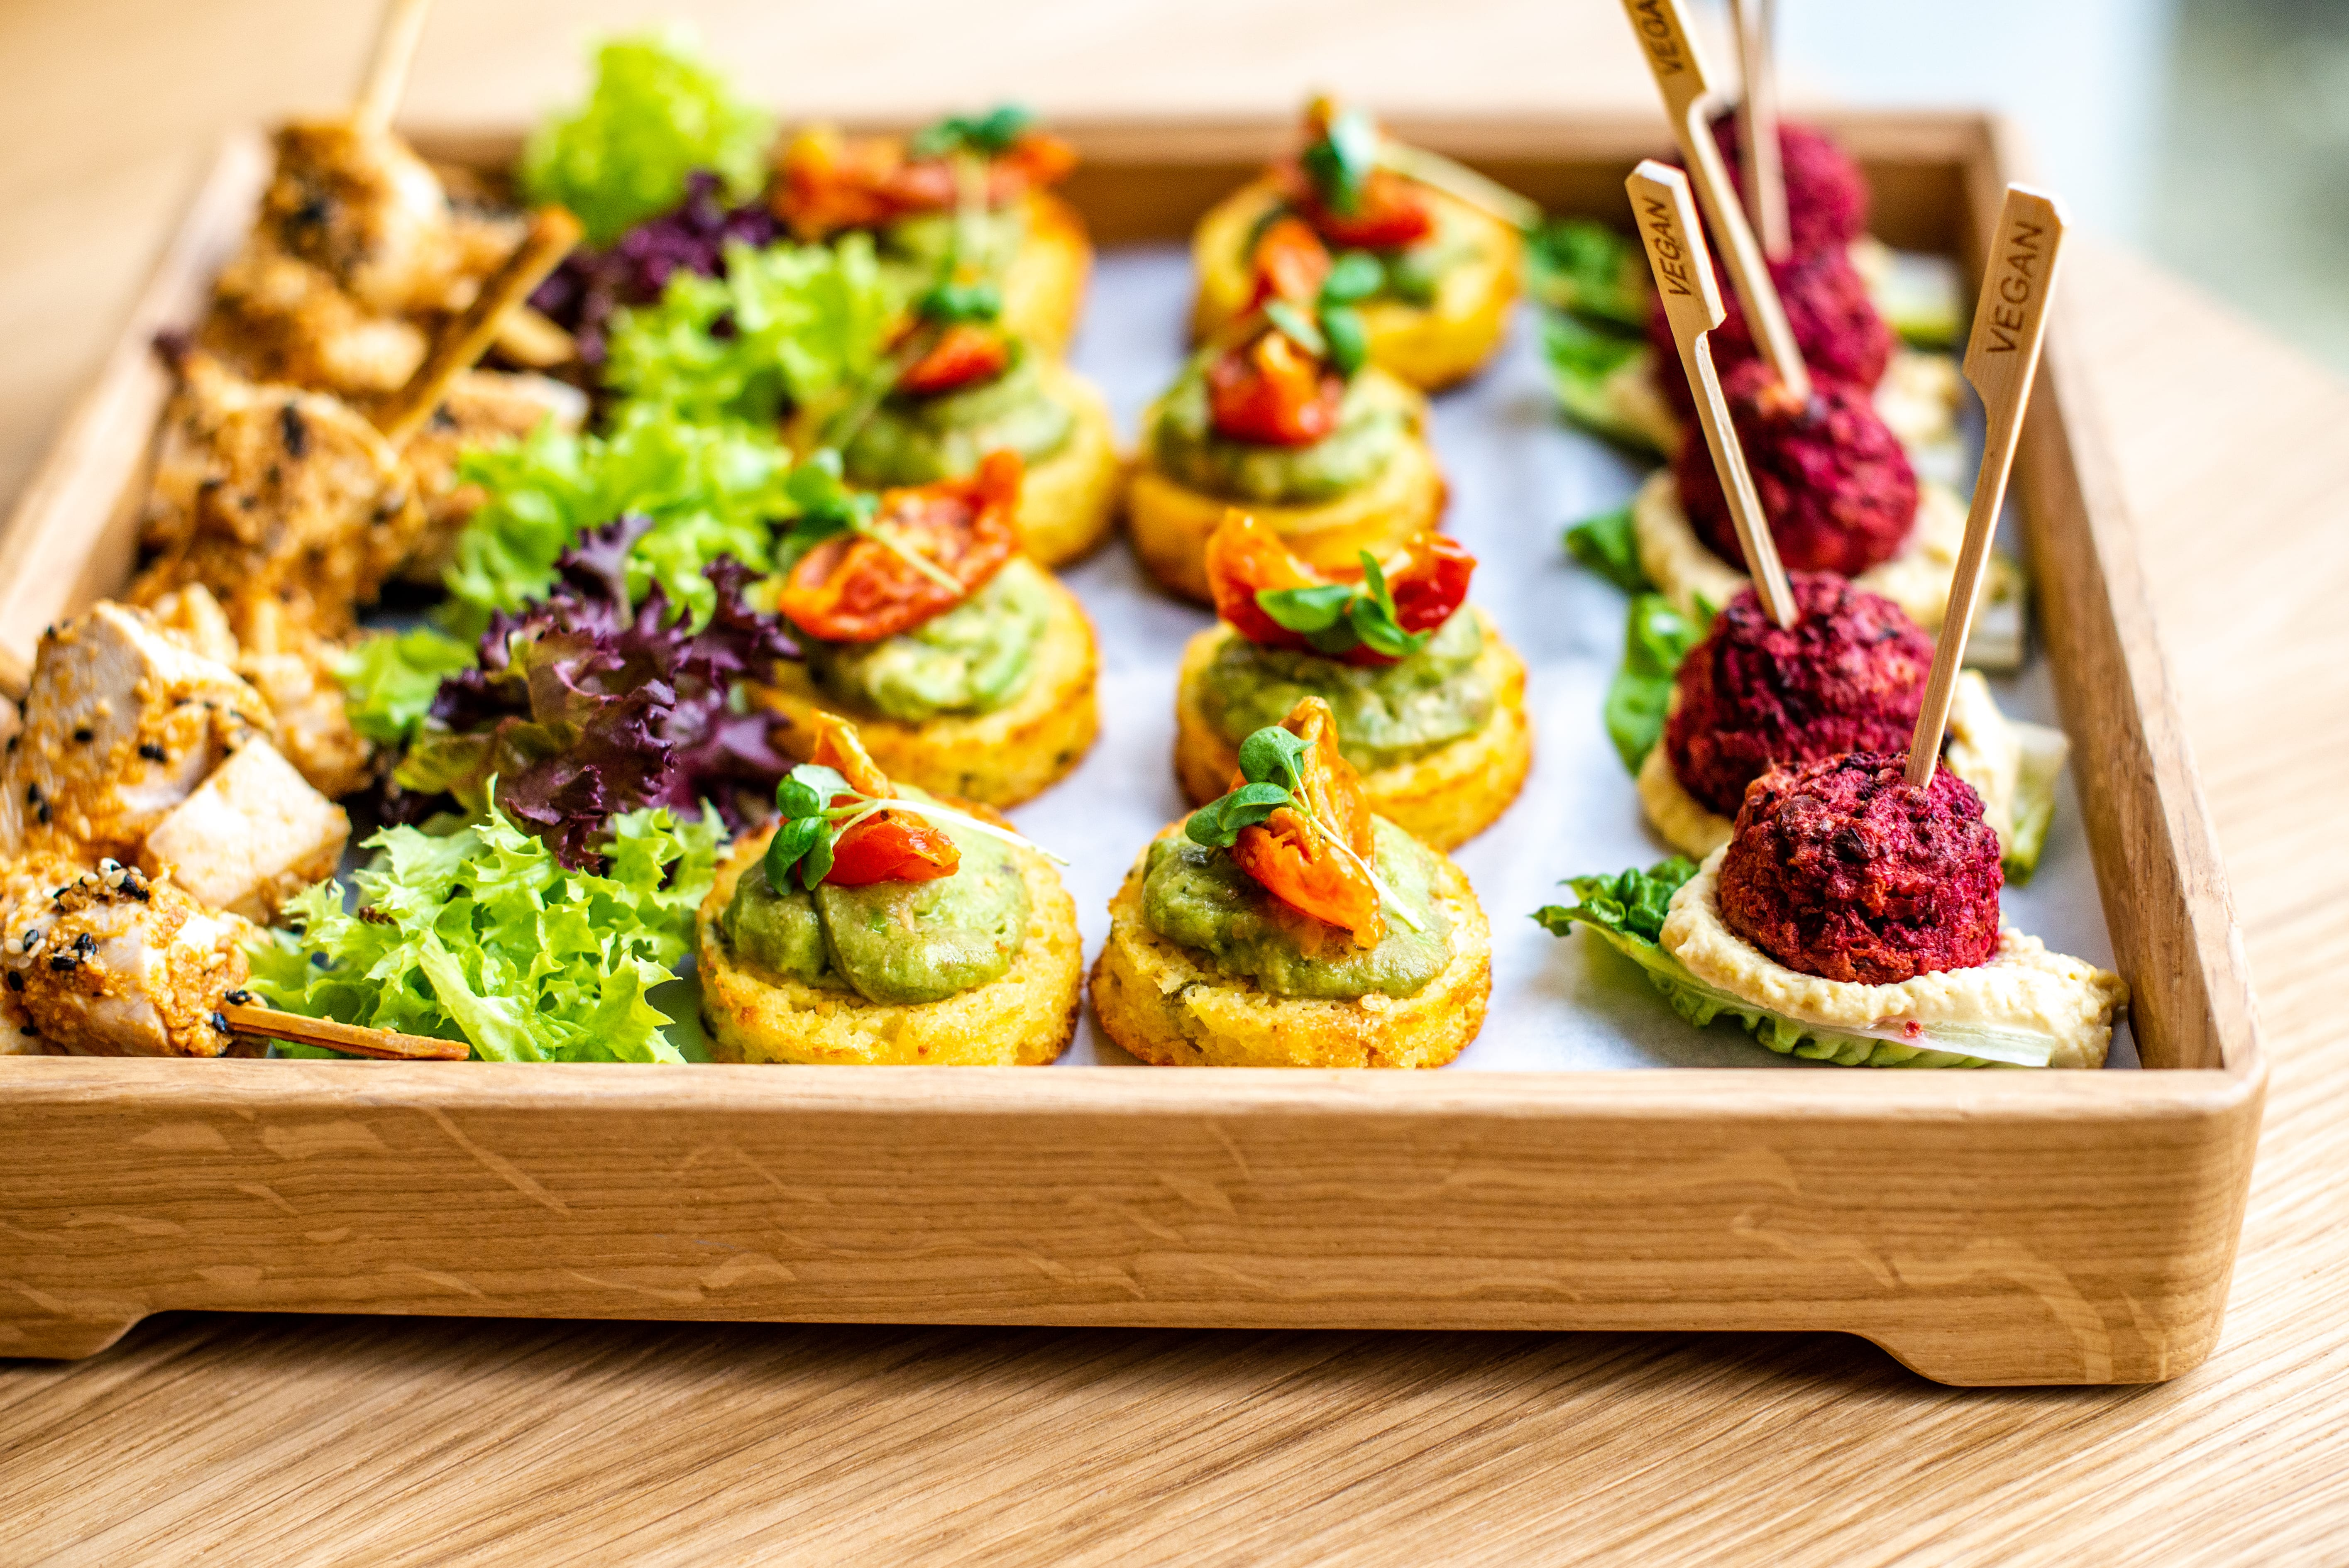 conscious consumption; workplace catering